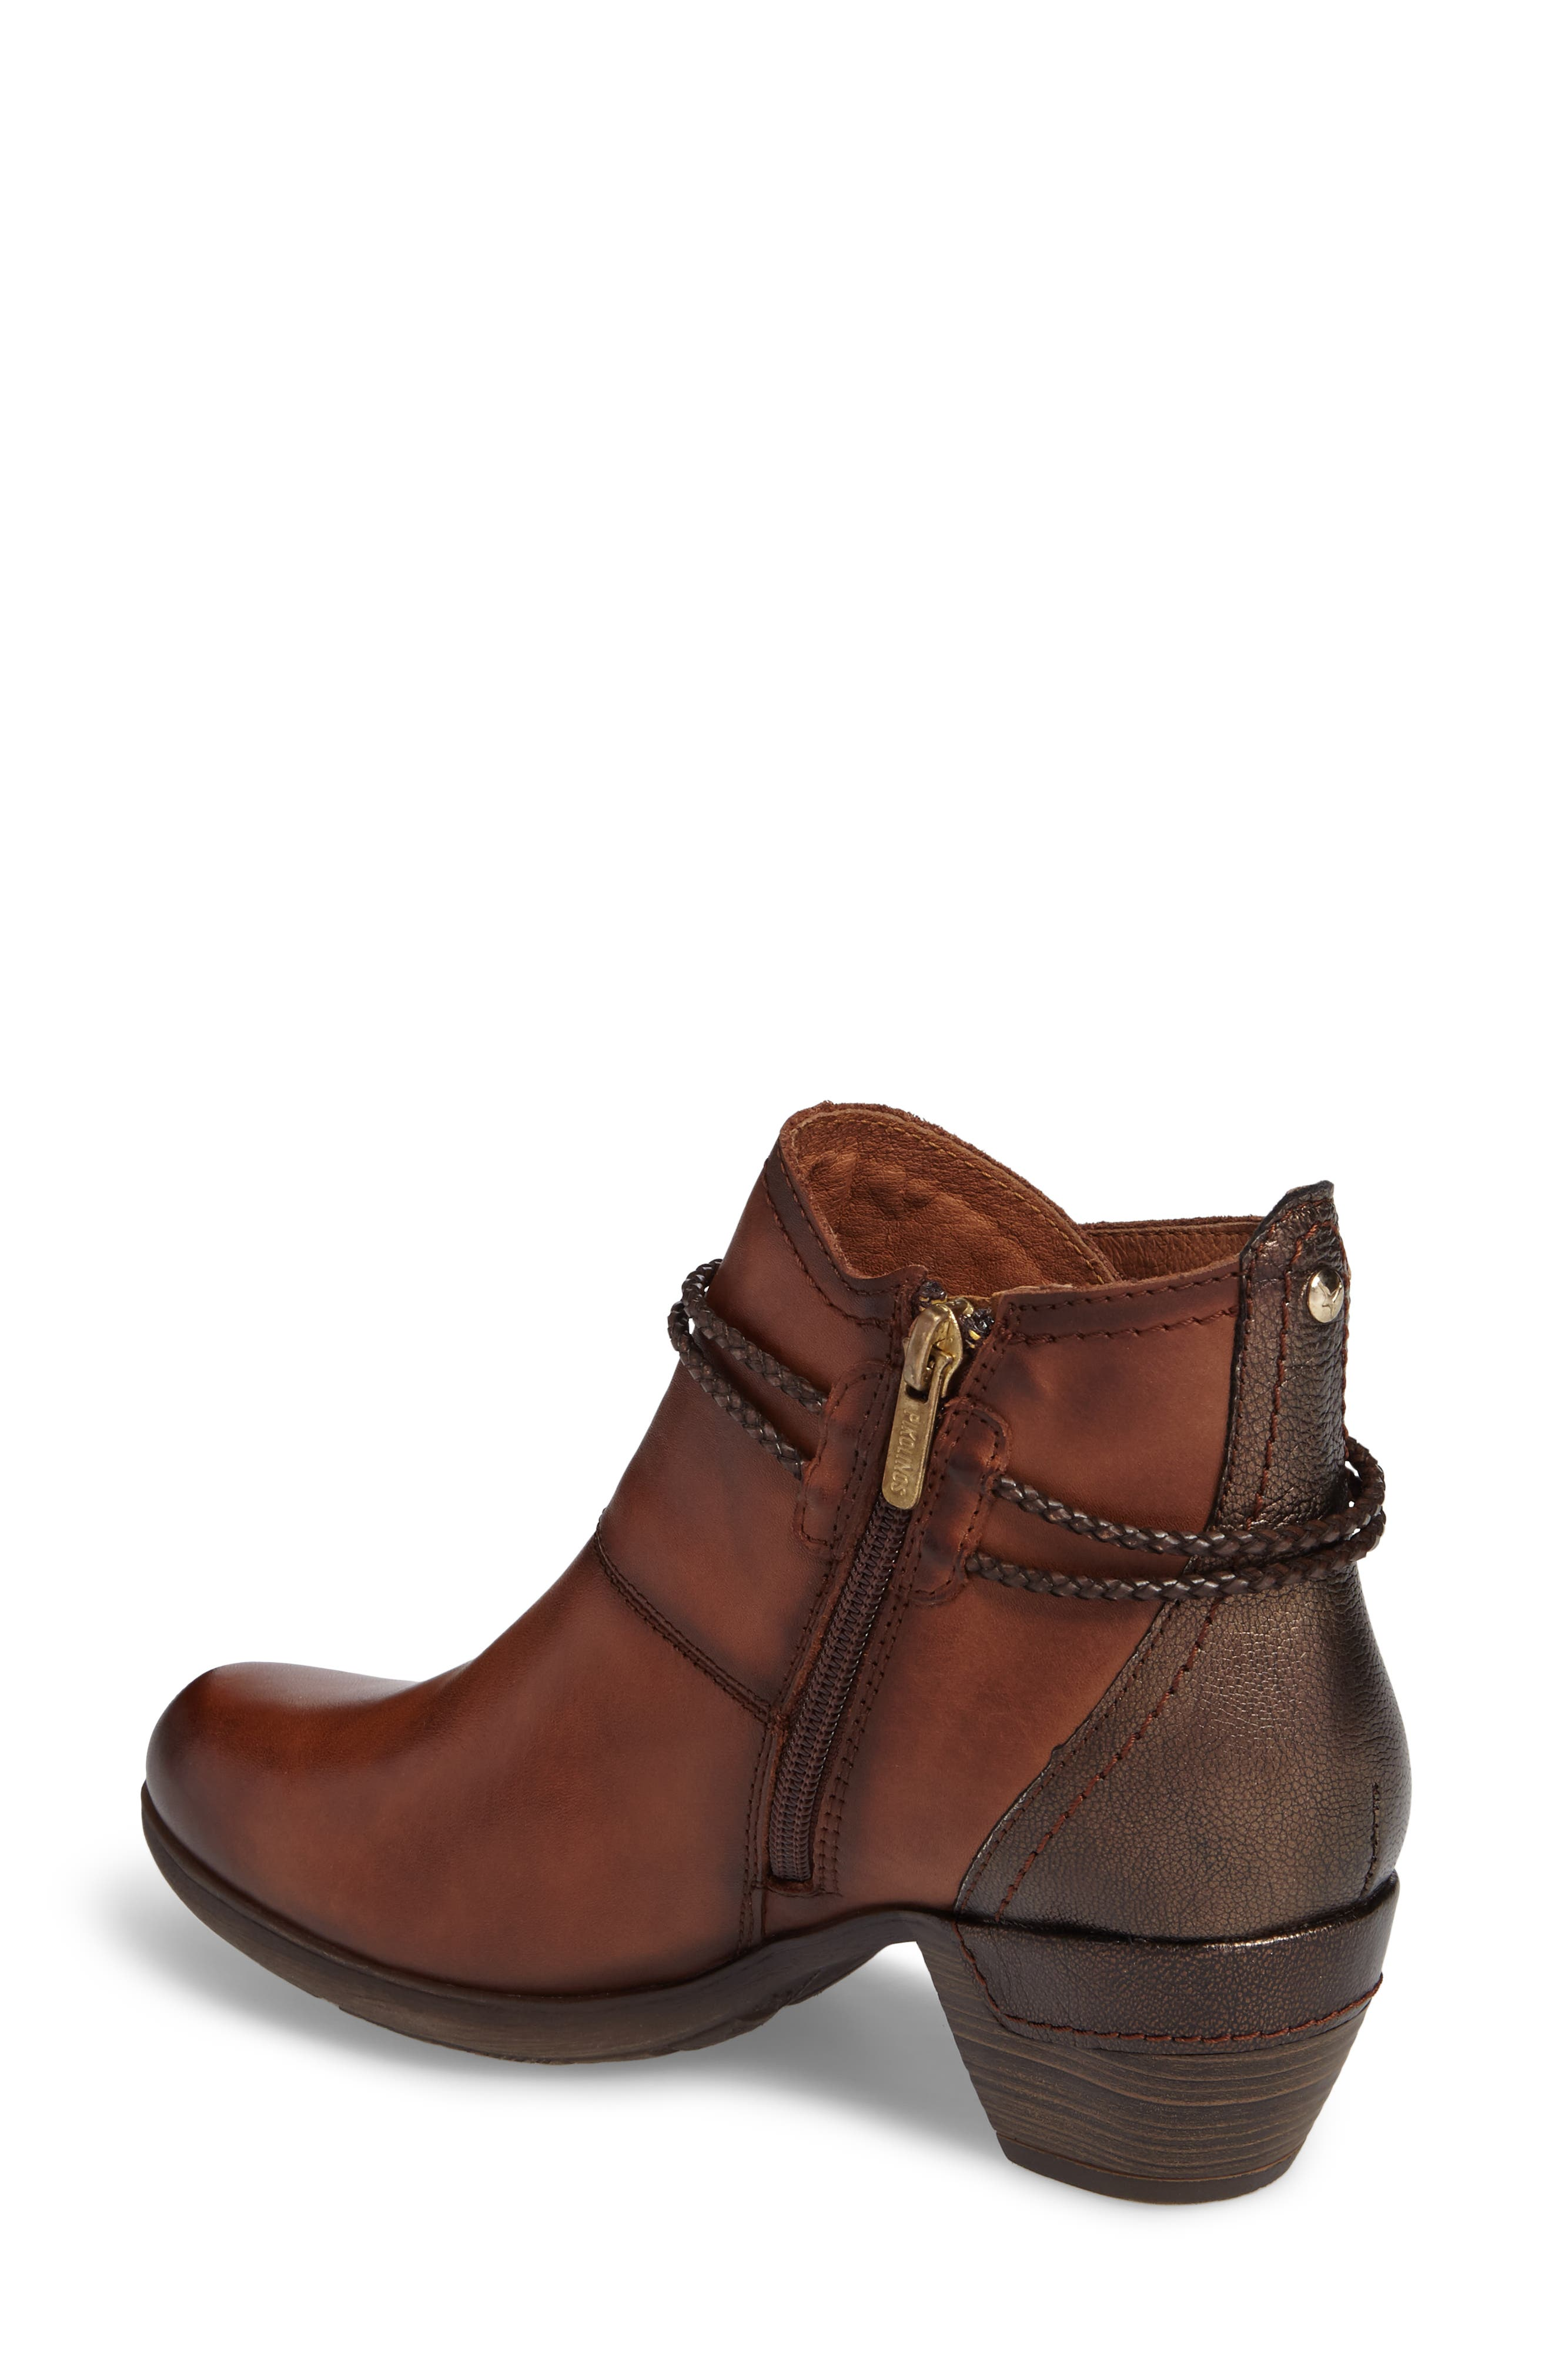 'Rotterdam' Braid Strap Bootie,                             Alternate thumbnail 2, color,                             CUERO BROWN OLMO LEATHER